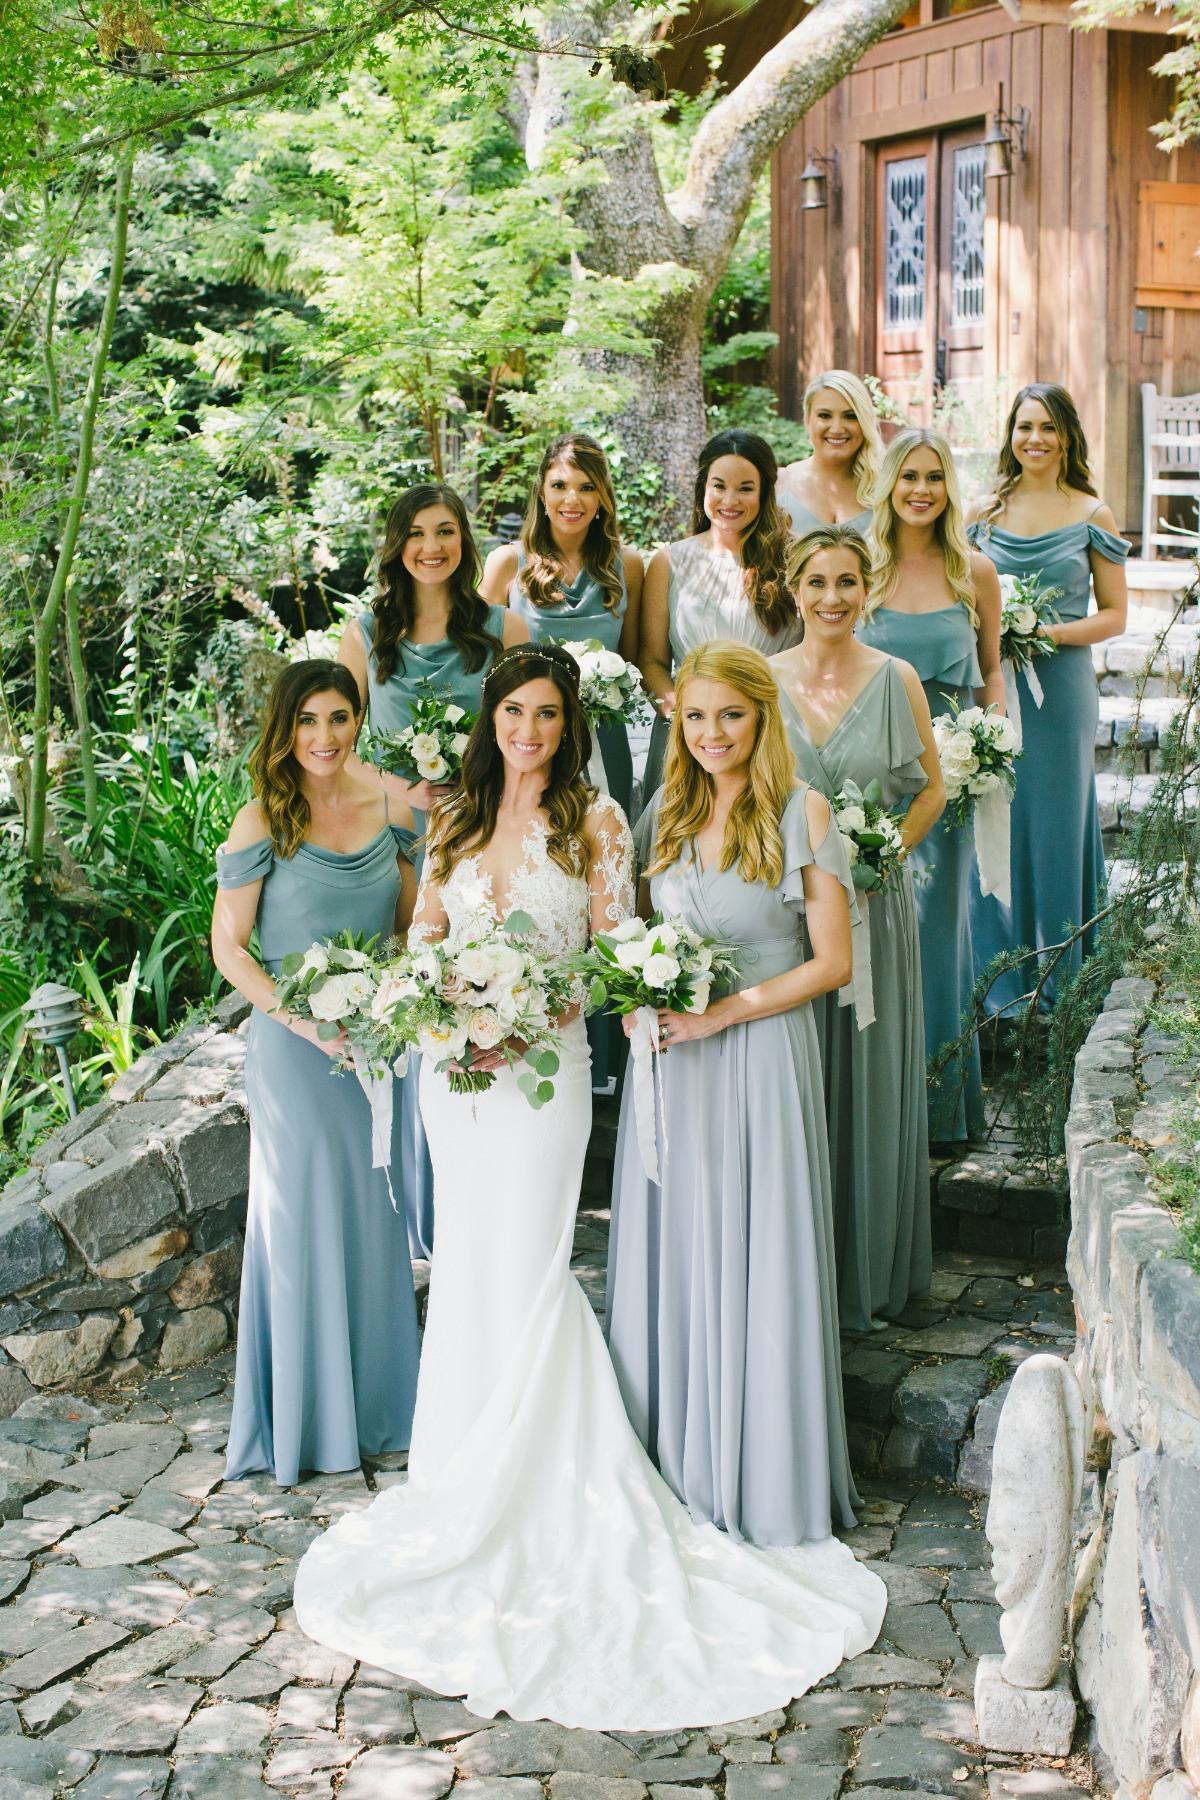 Bridesmaids in shades of blue